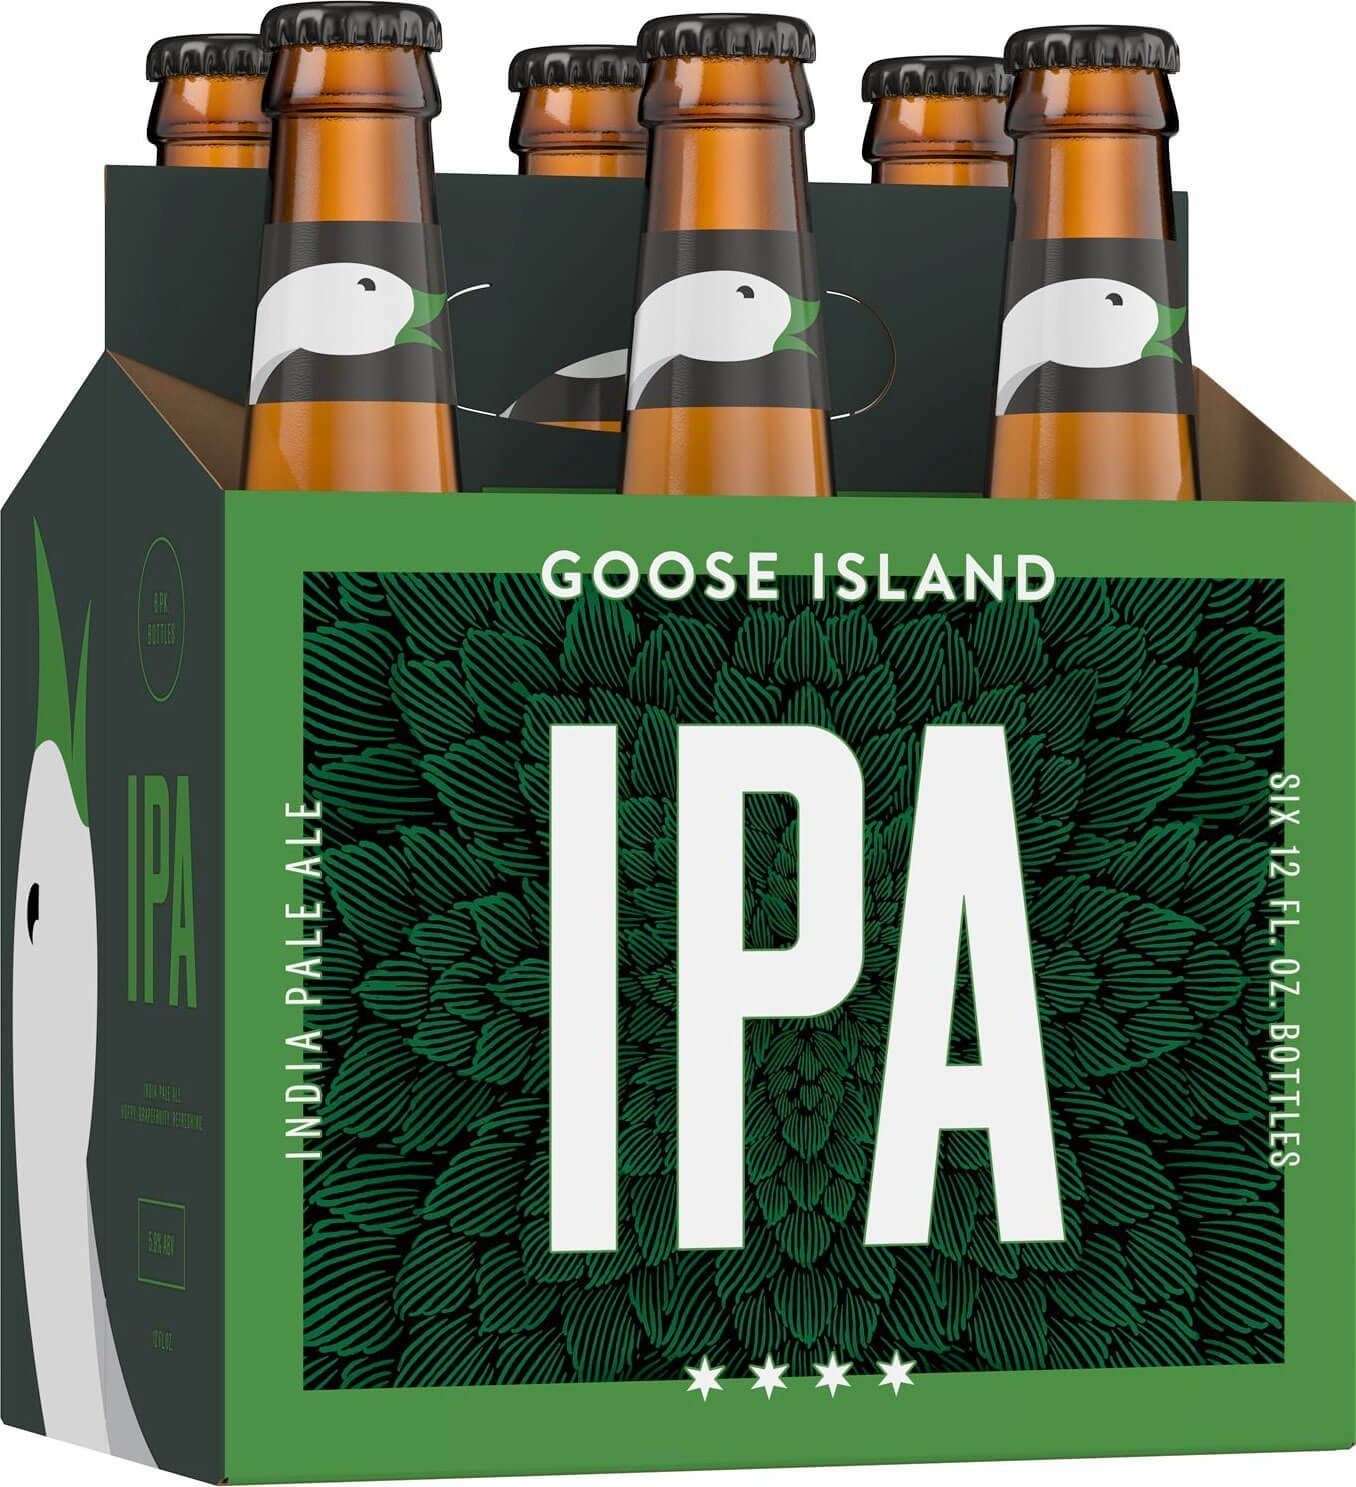 Packaging art for the Goose Island IPA by Goose Island Beer Co.